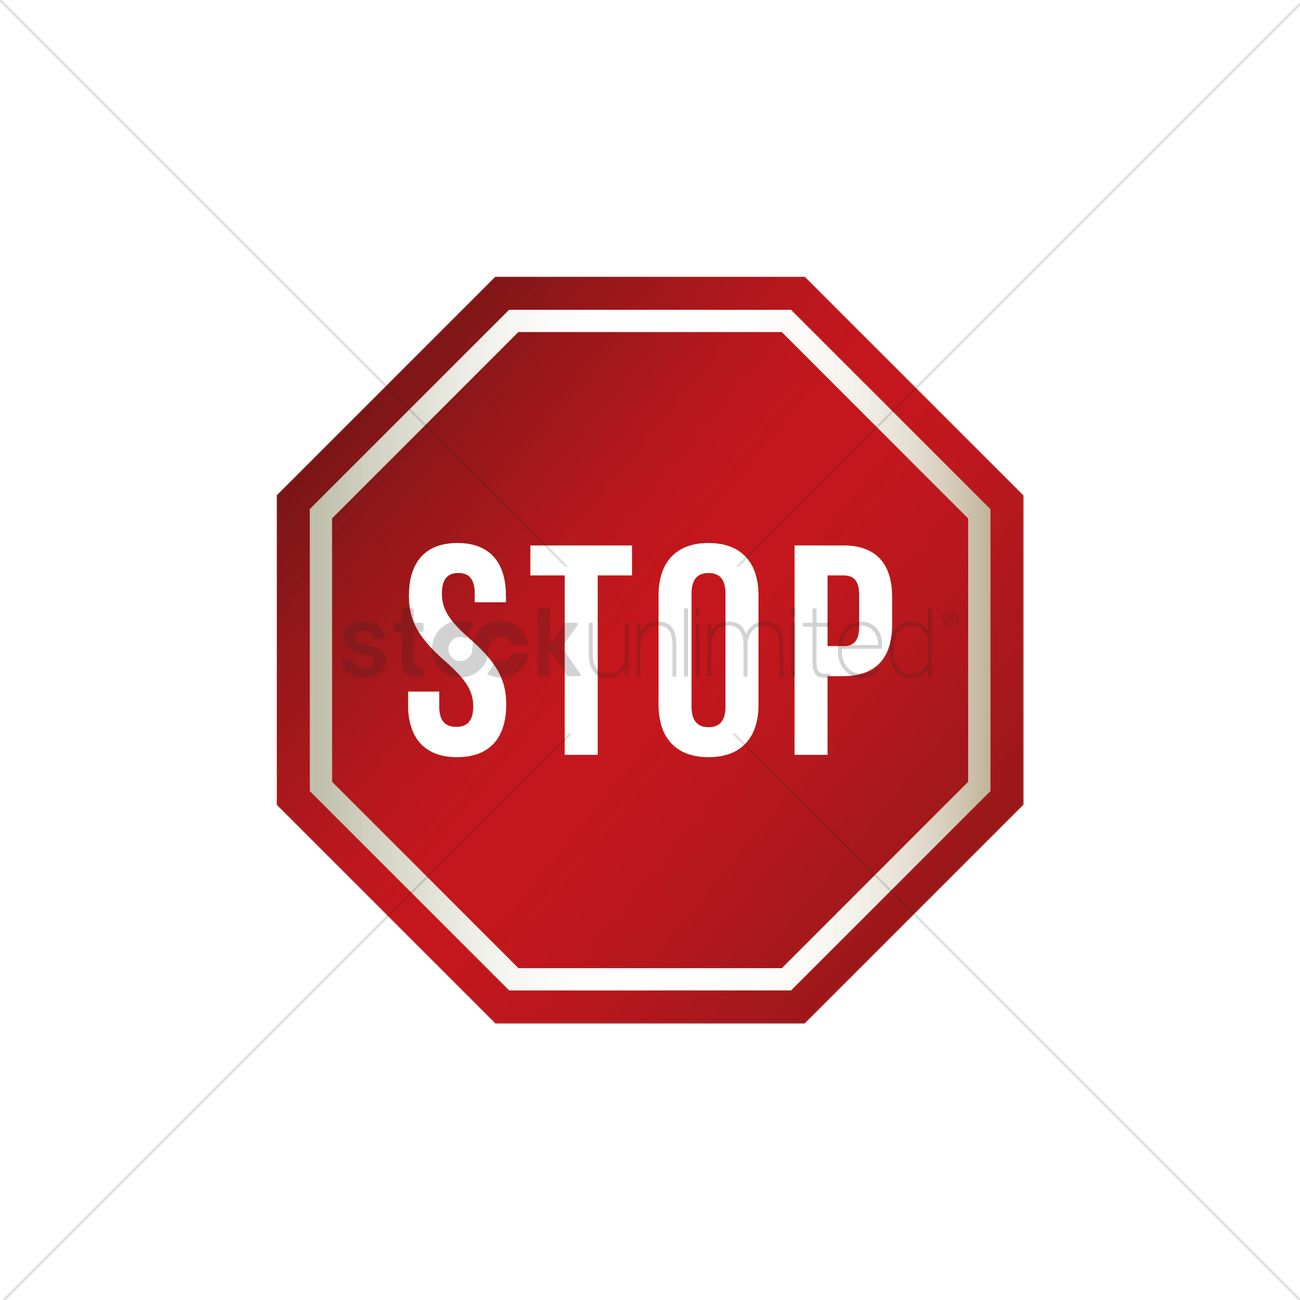 stop road sign vector image 1559032 stockunlimited